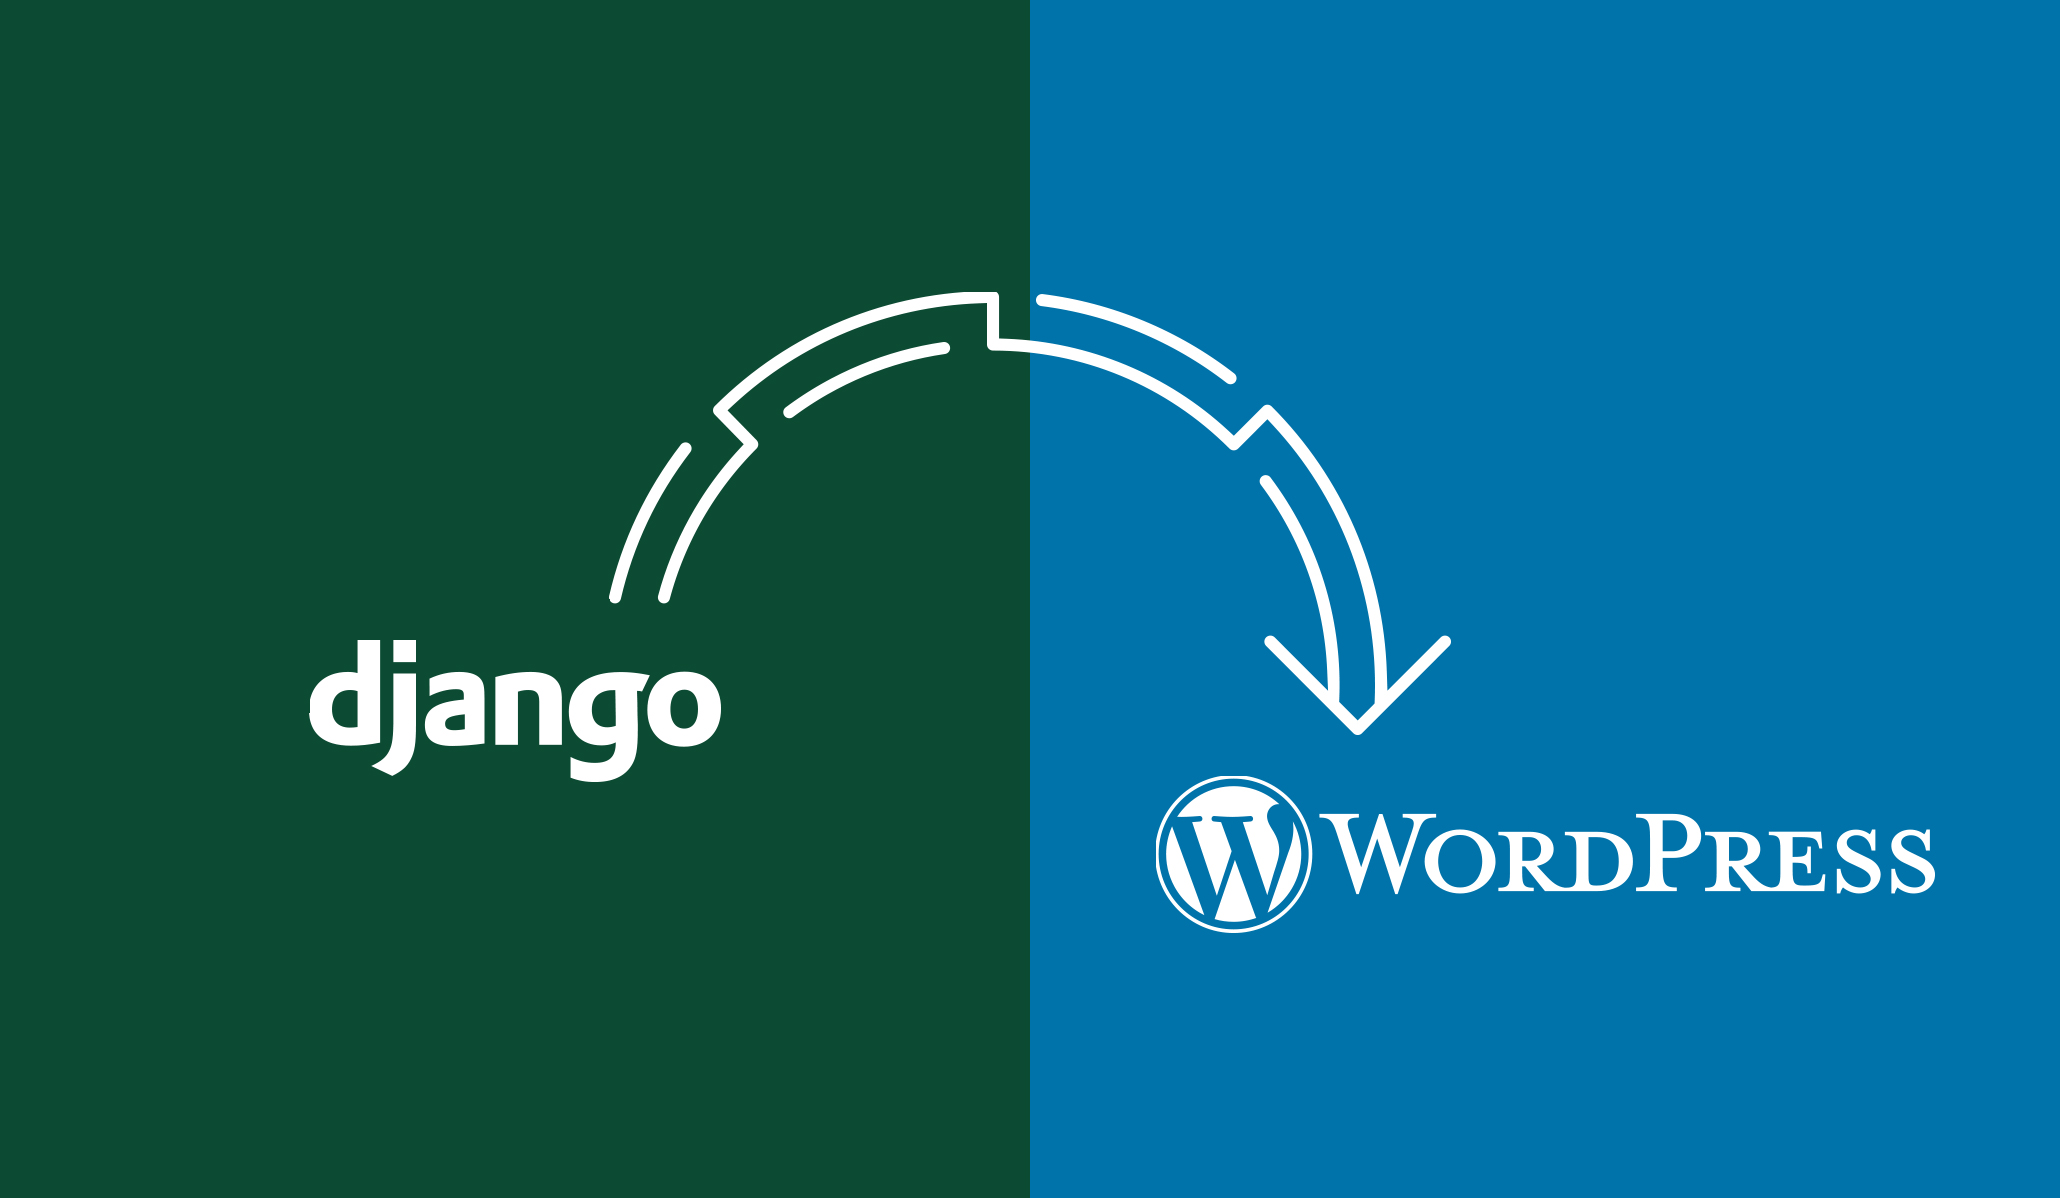 How to Migrate Django Website to WordPress – The Ultimate Guide